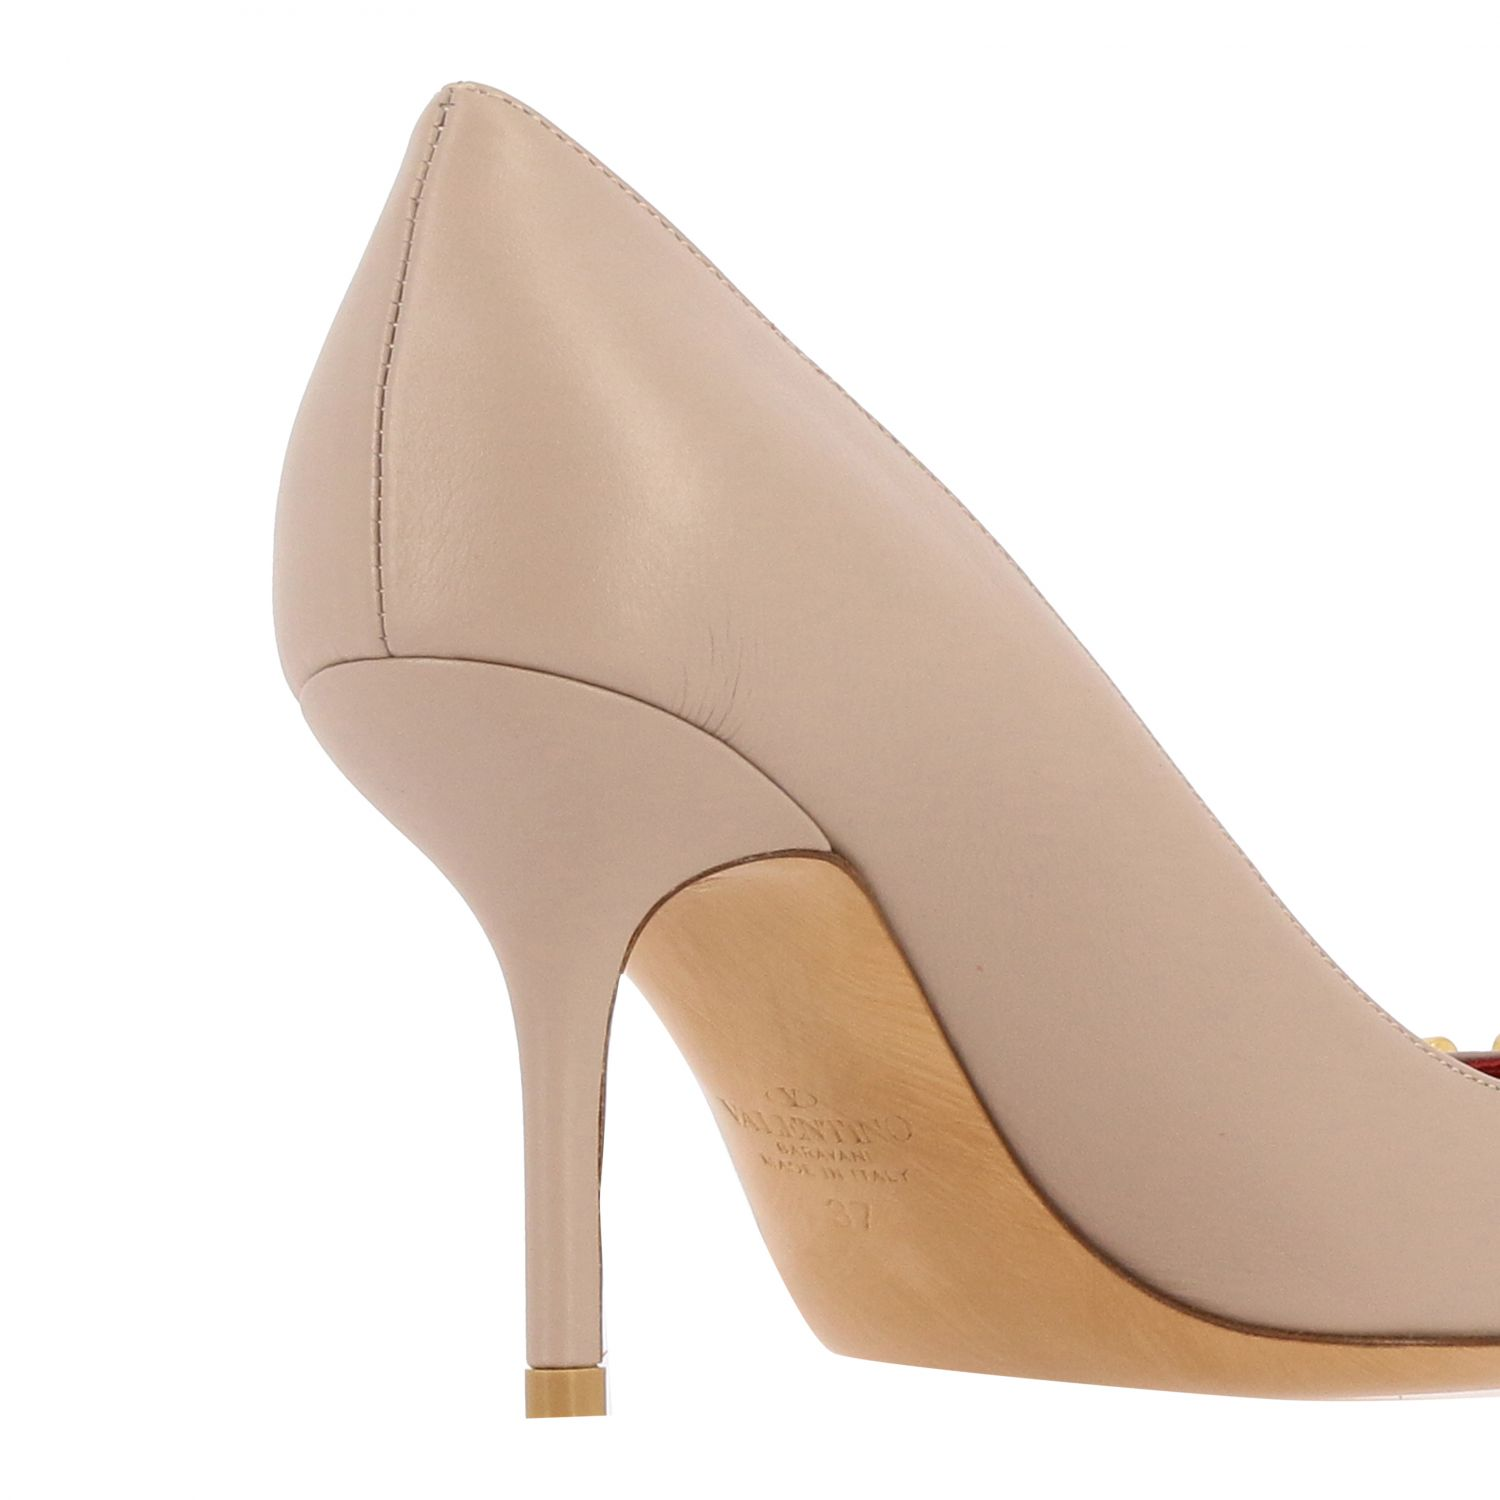 Pumps Valentino Garavani: Shoes women Valentino Garavani blush pink 5